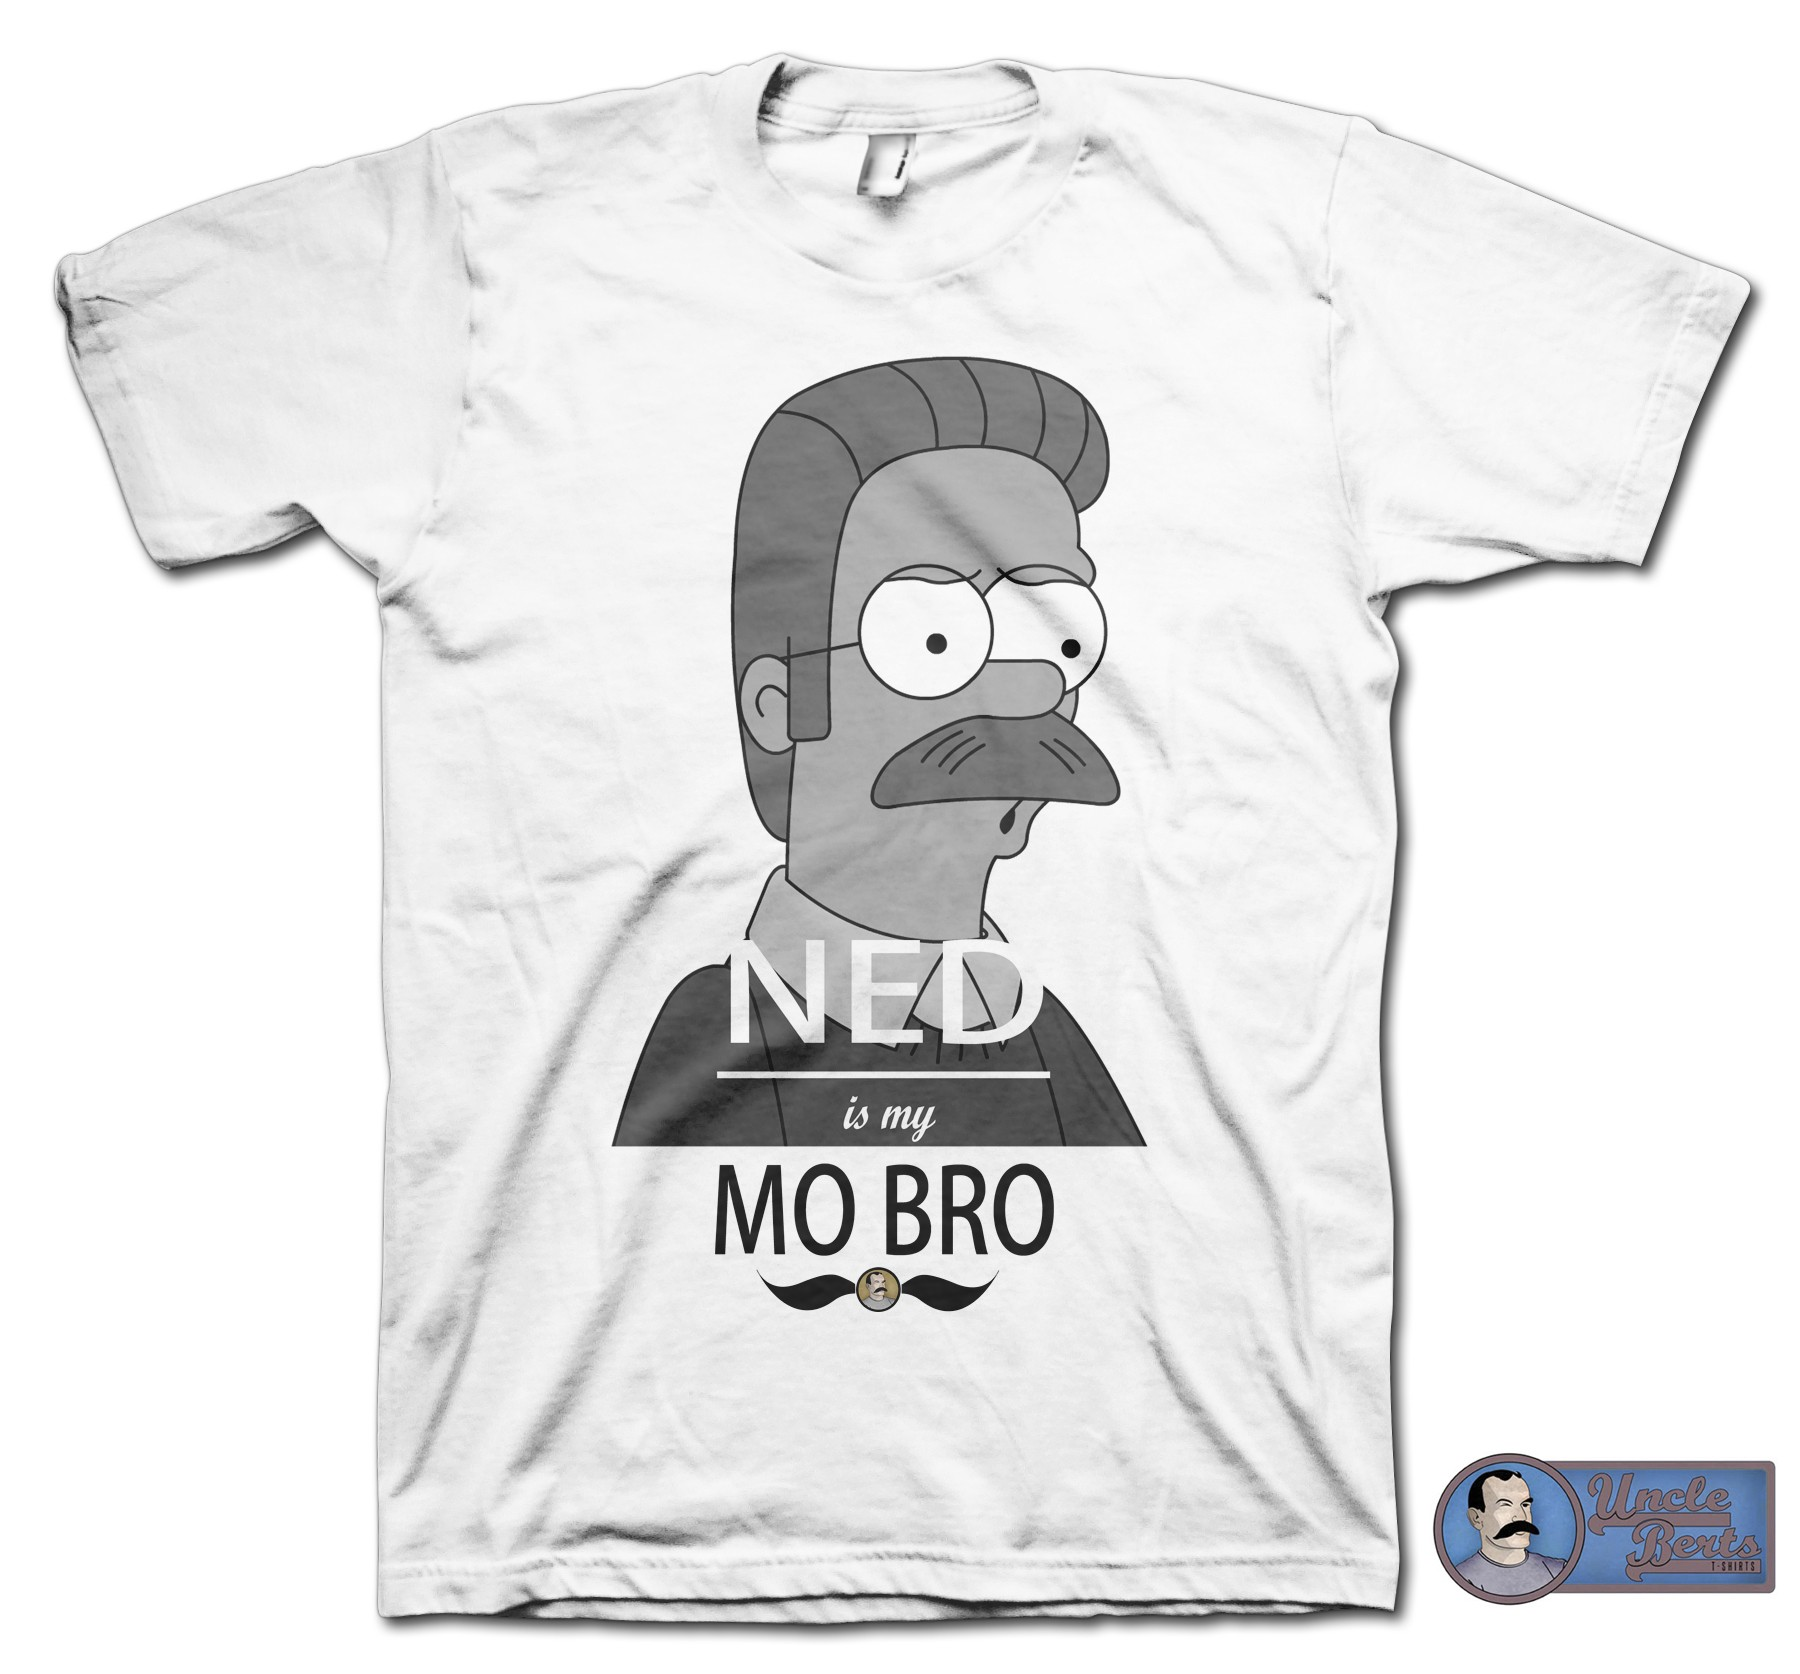 NED is my MO BRO T-shirt